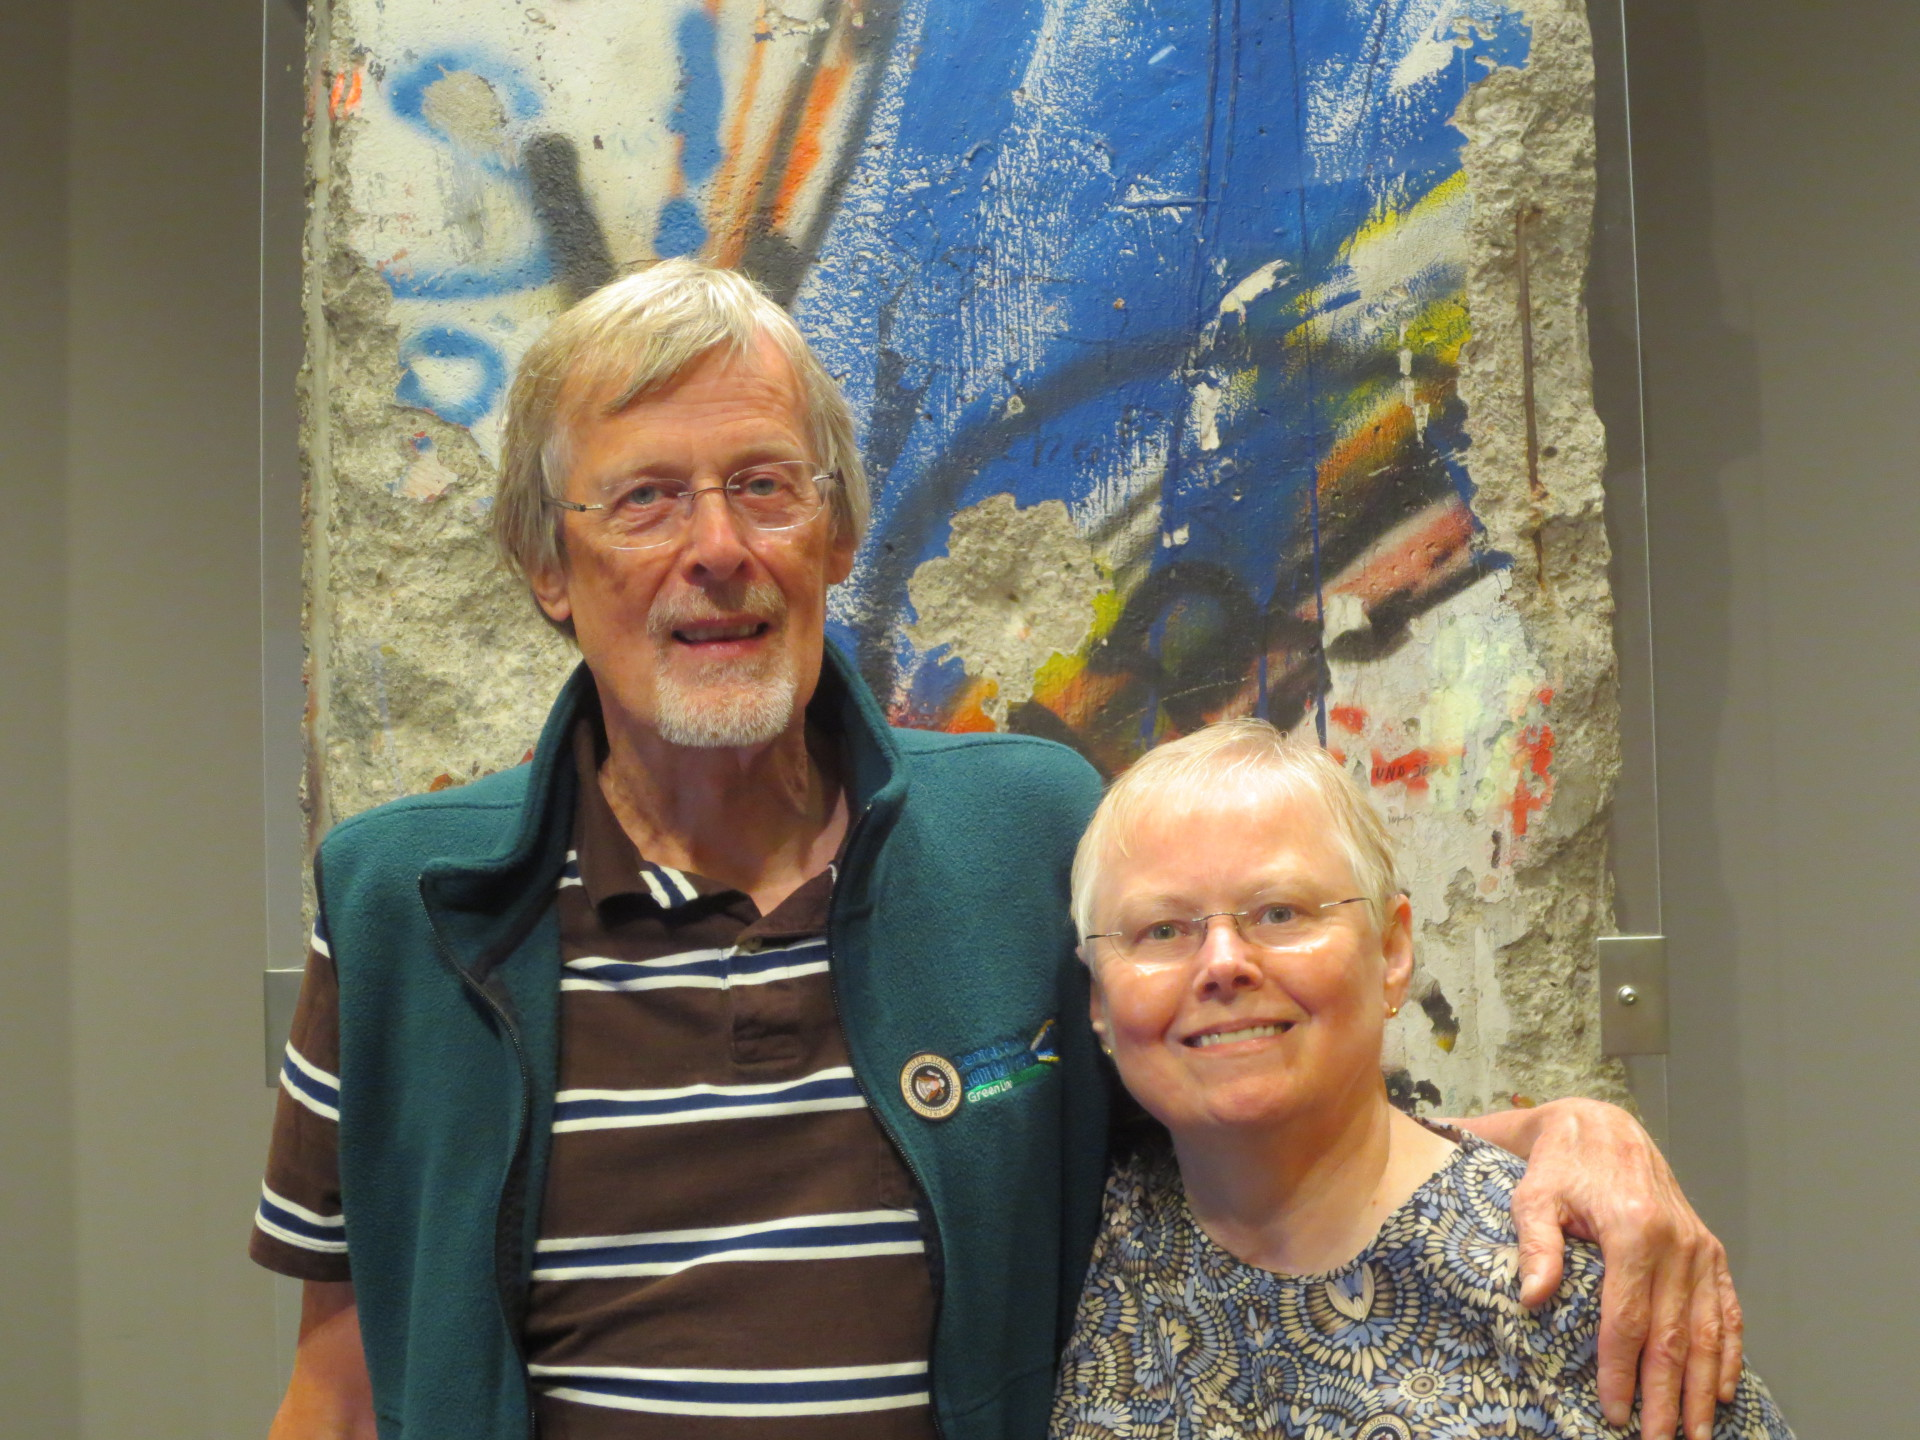 Roger and Dianne at the John Kennedy Library and Museum - 2014